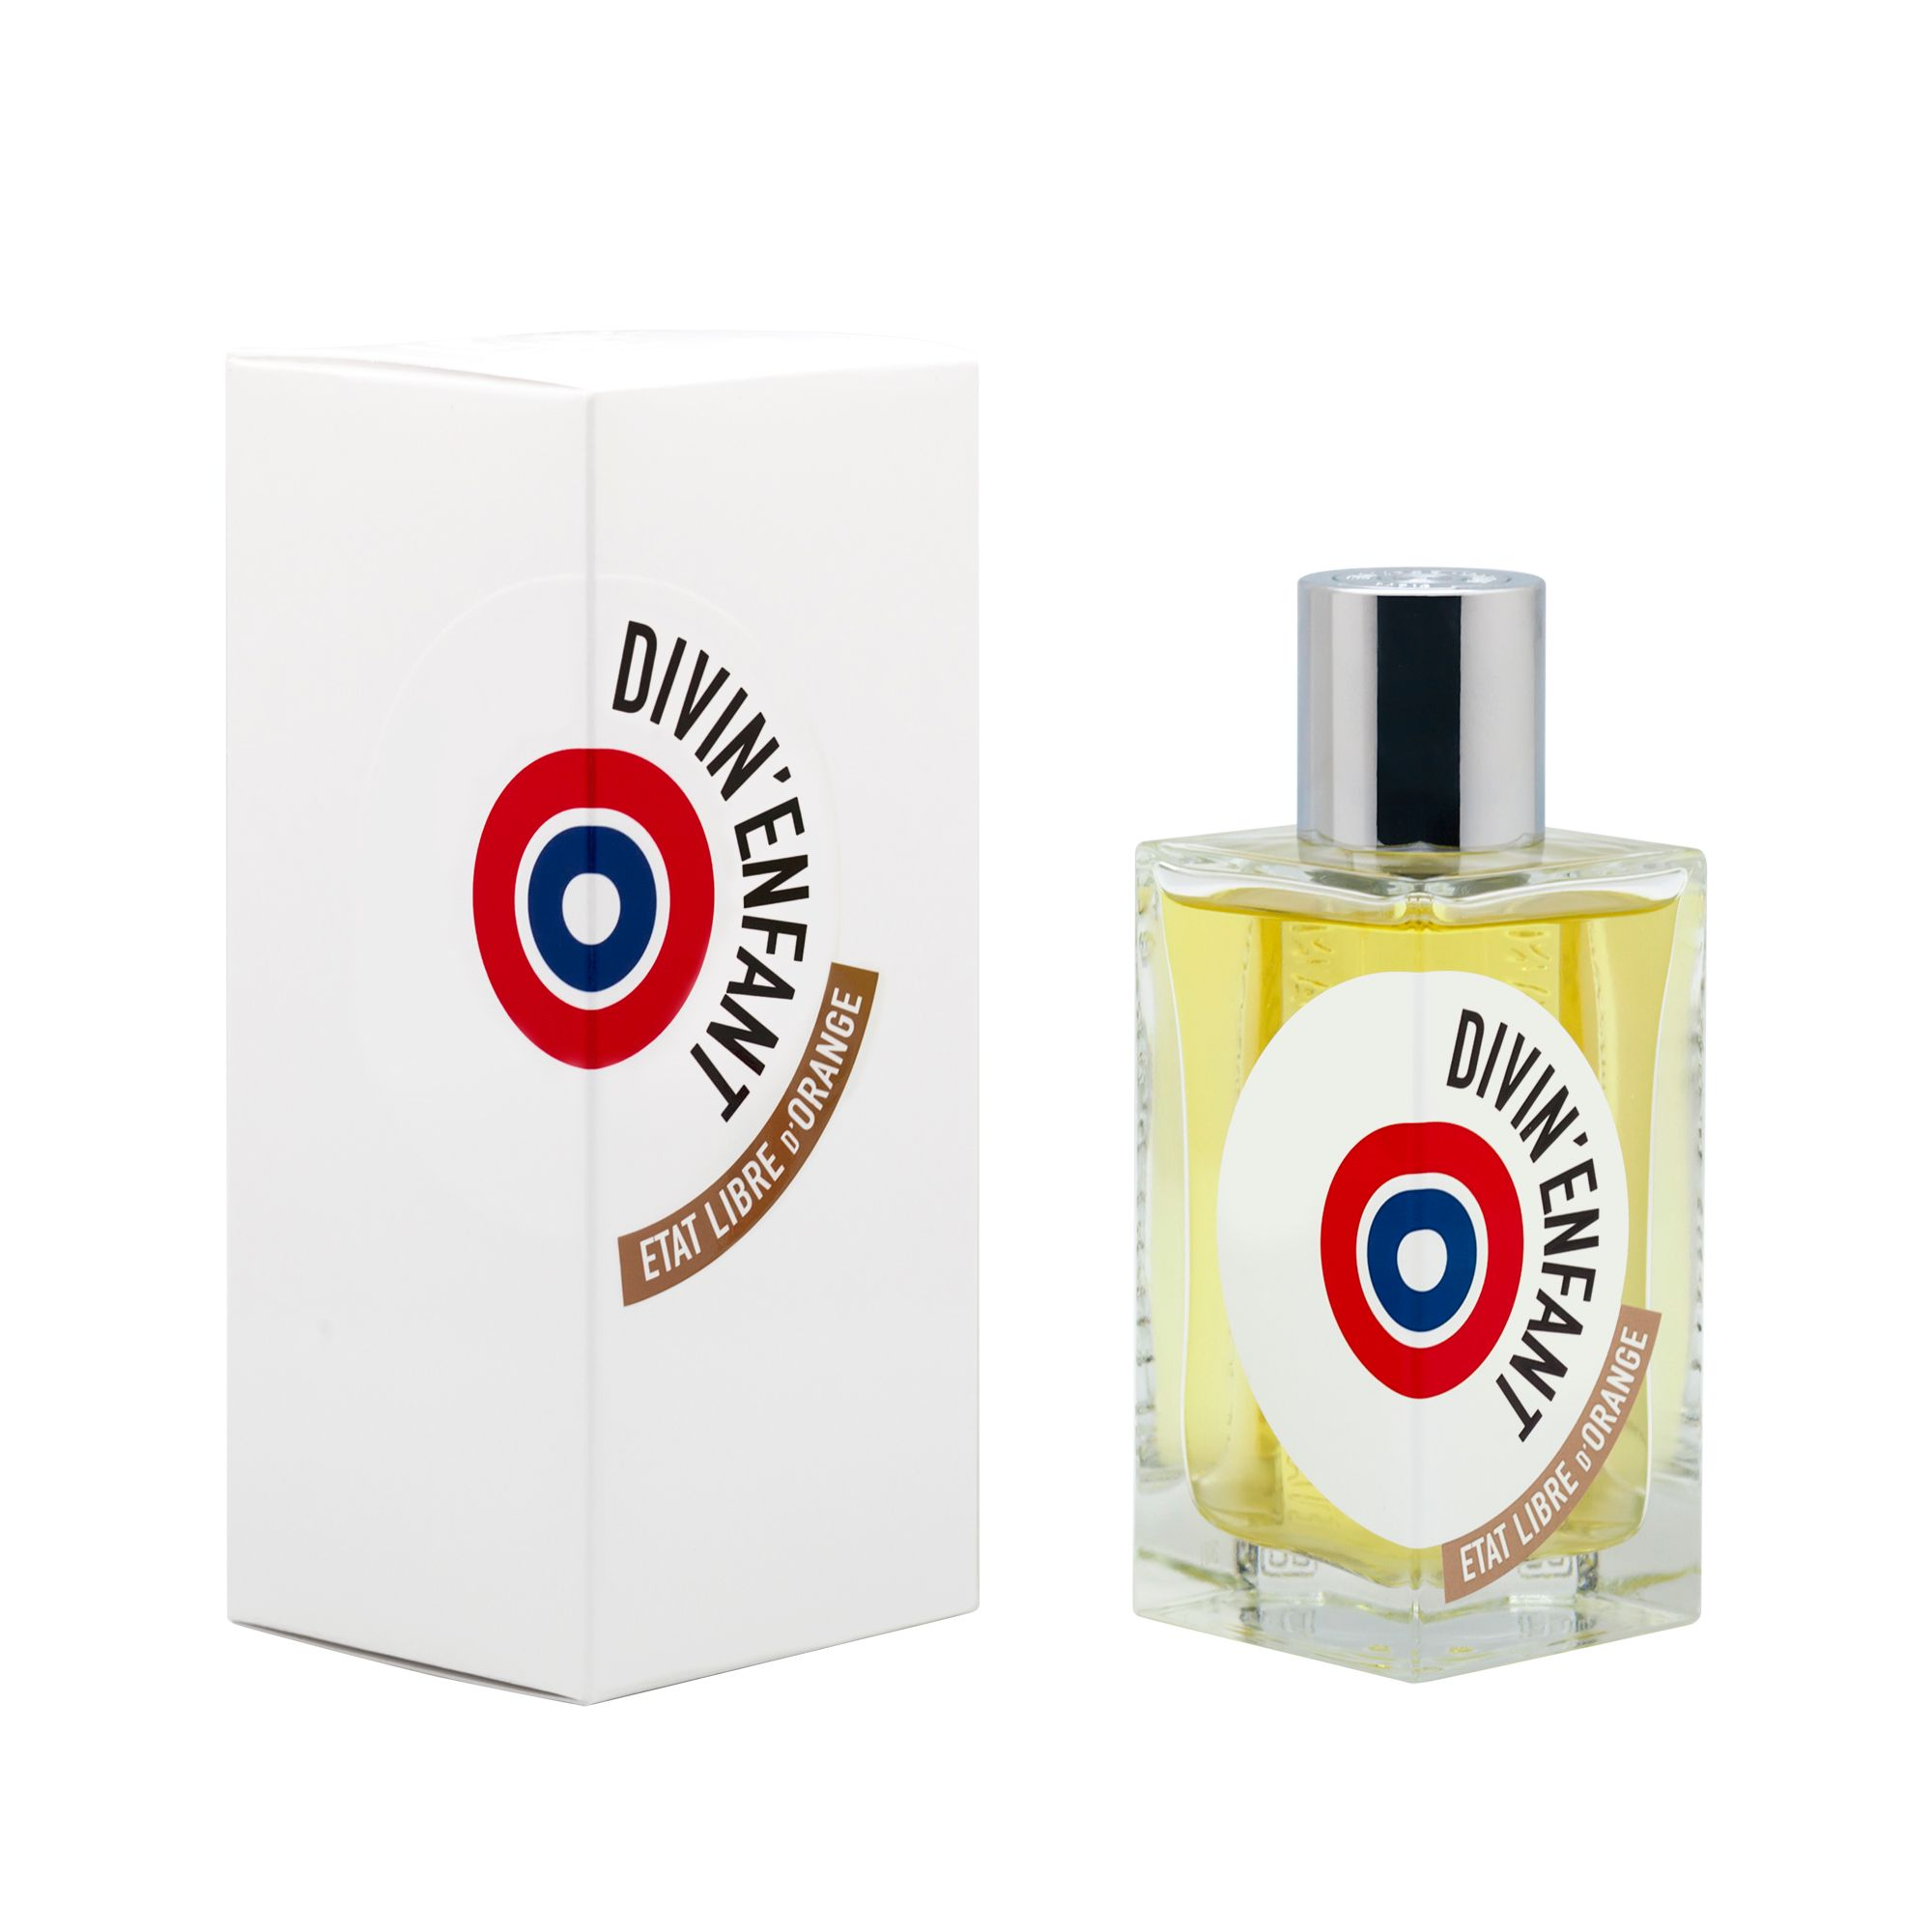 Etat Libre d'Orange Etat Libre d'Orange Divin Enfant Eau de Parfum 100ml